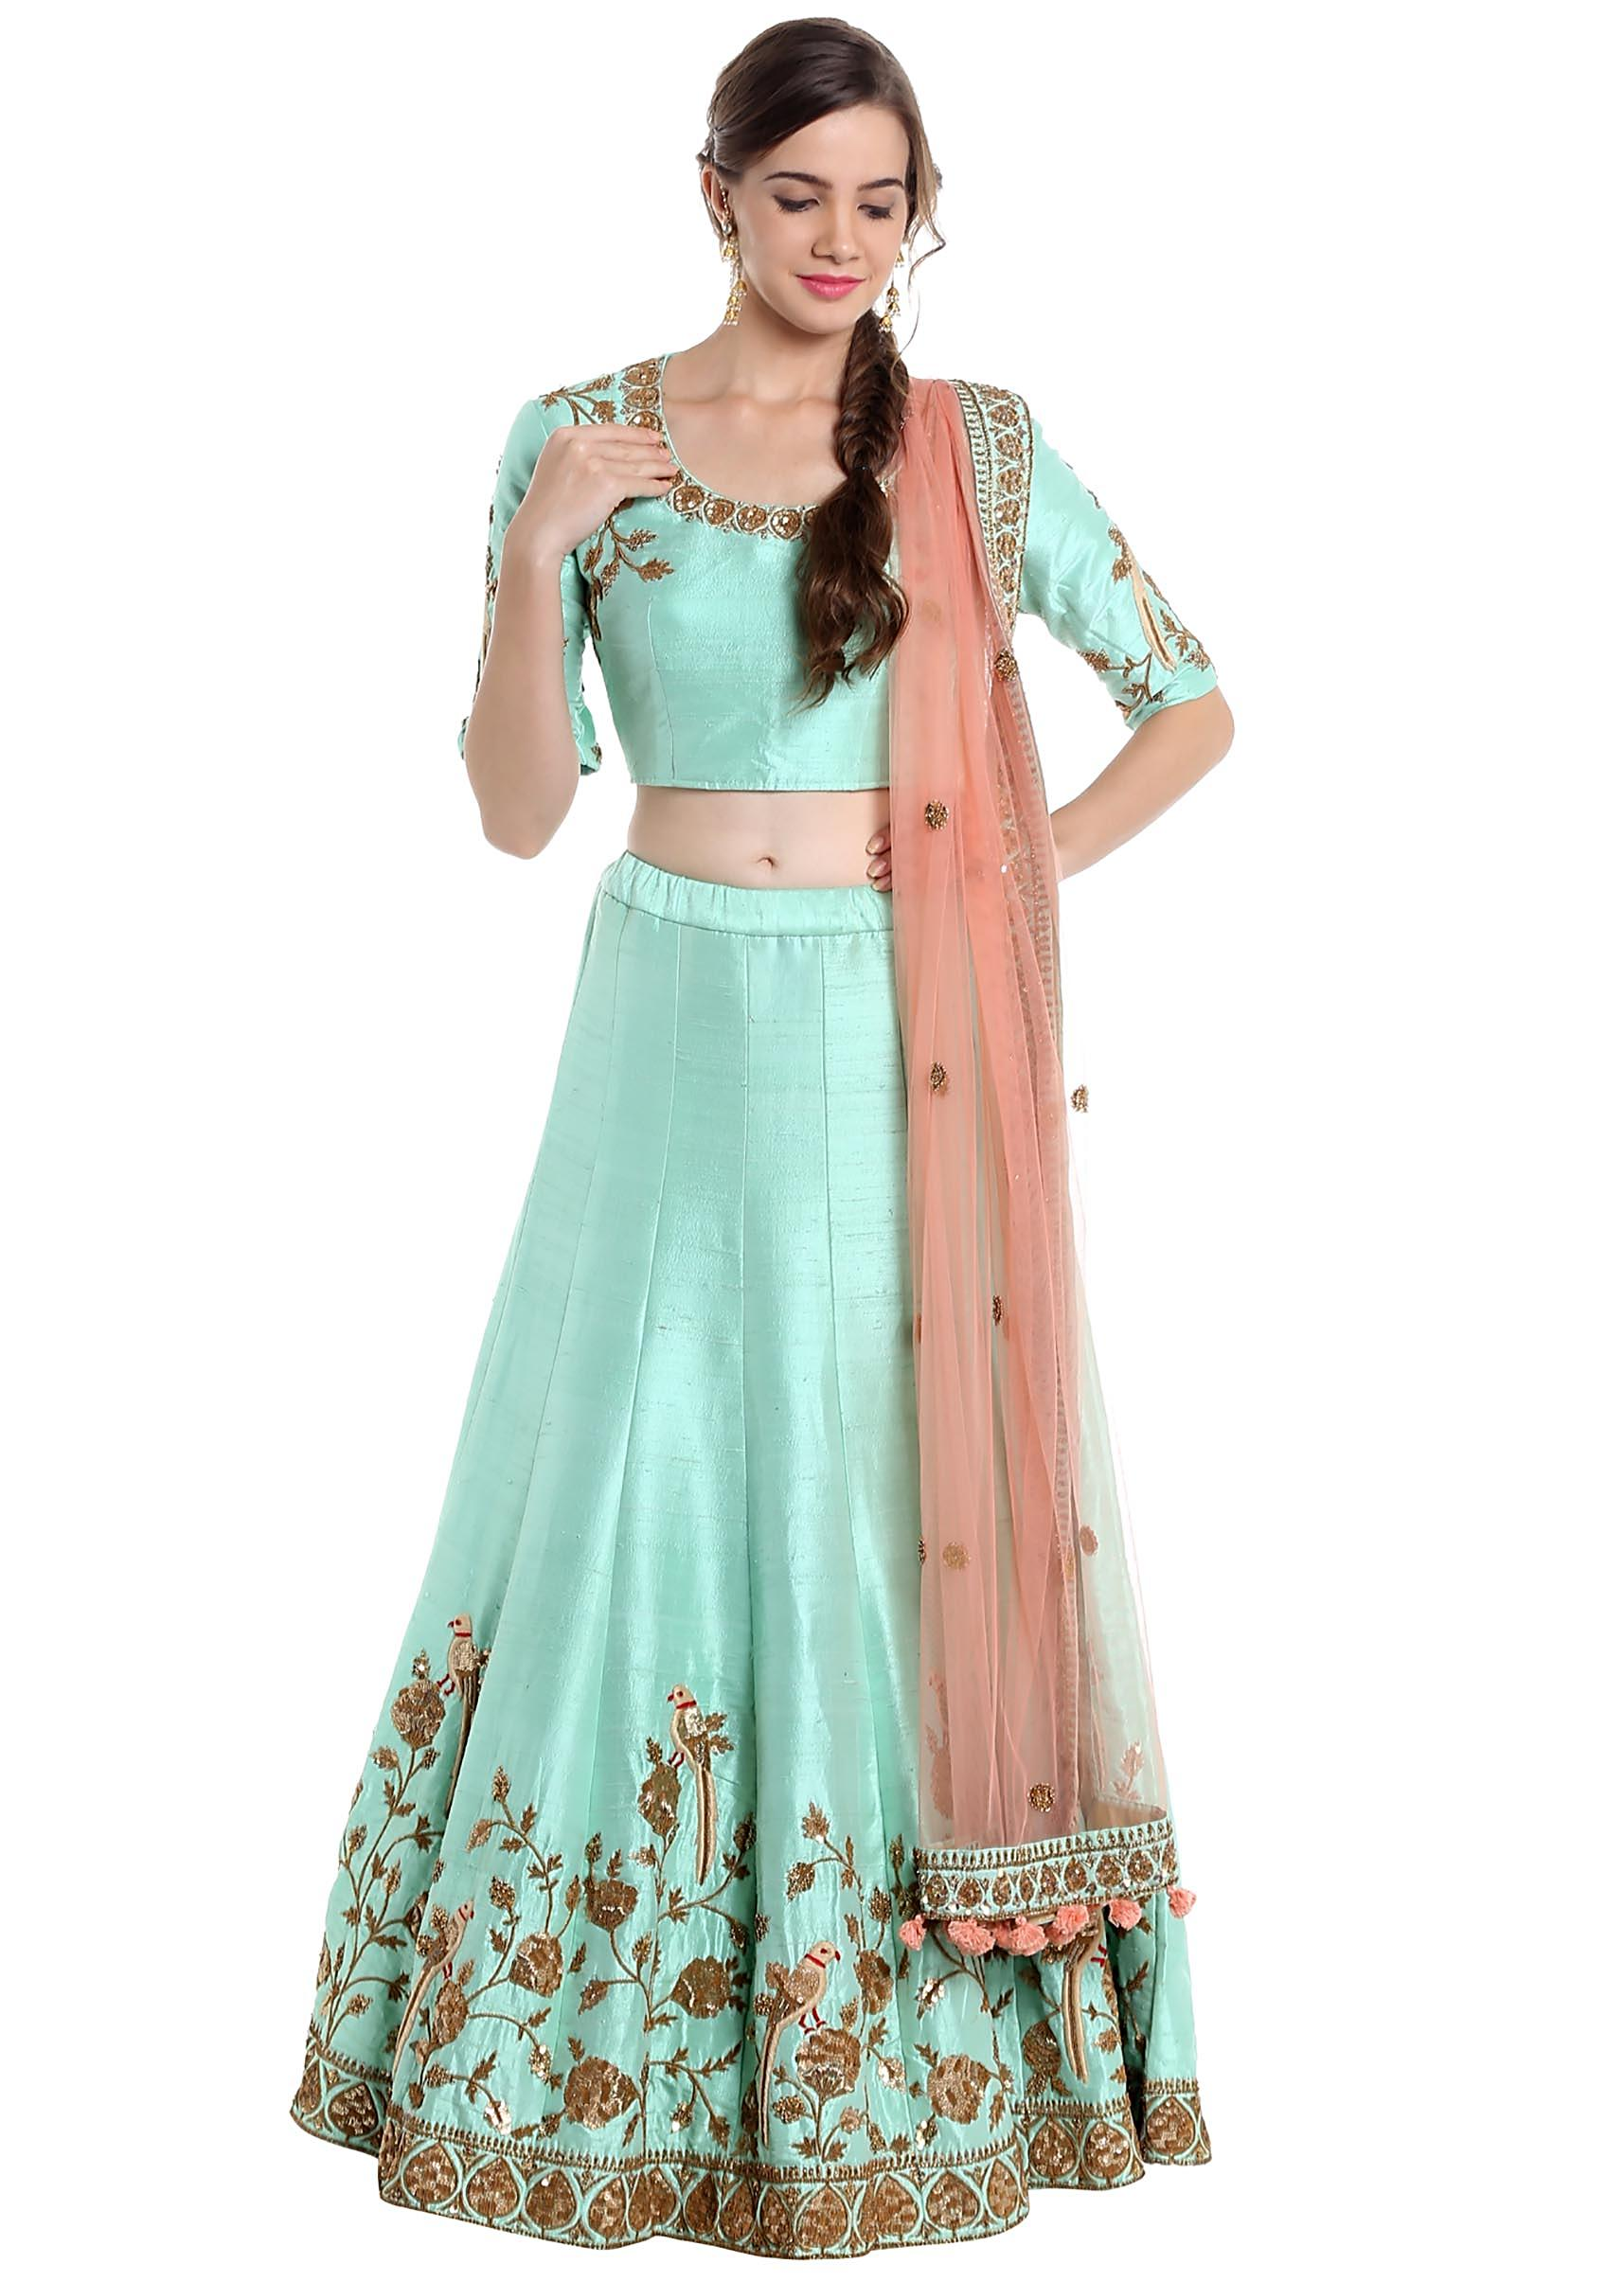 052f2ce504 Sky blue lehenga choli with pink dupatta in resham and zardosi only on  KalkiMore Detail